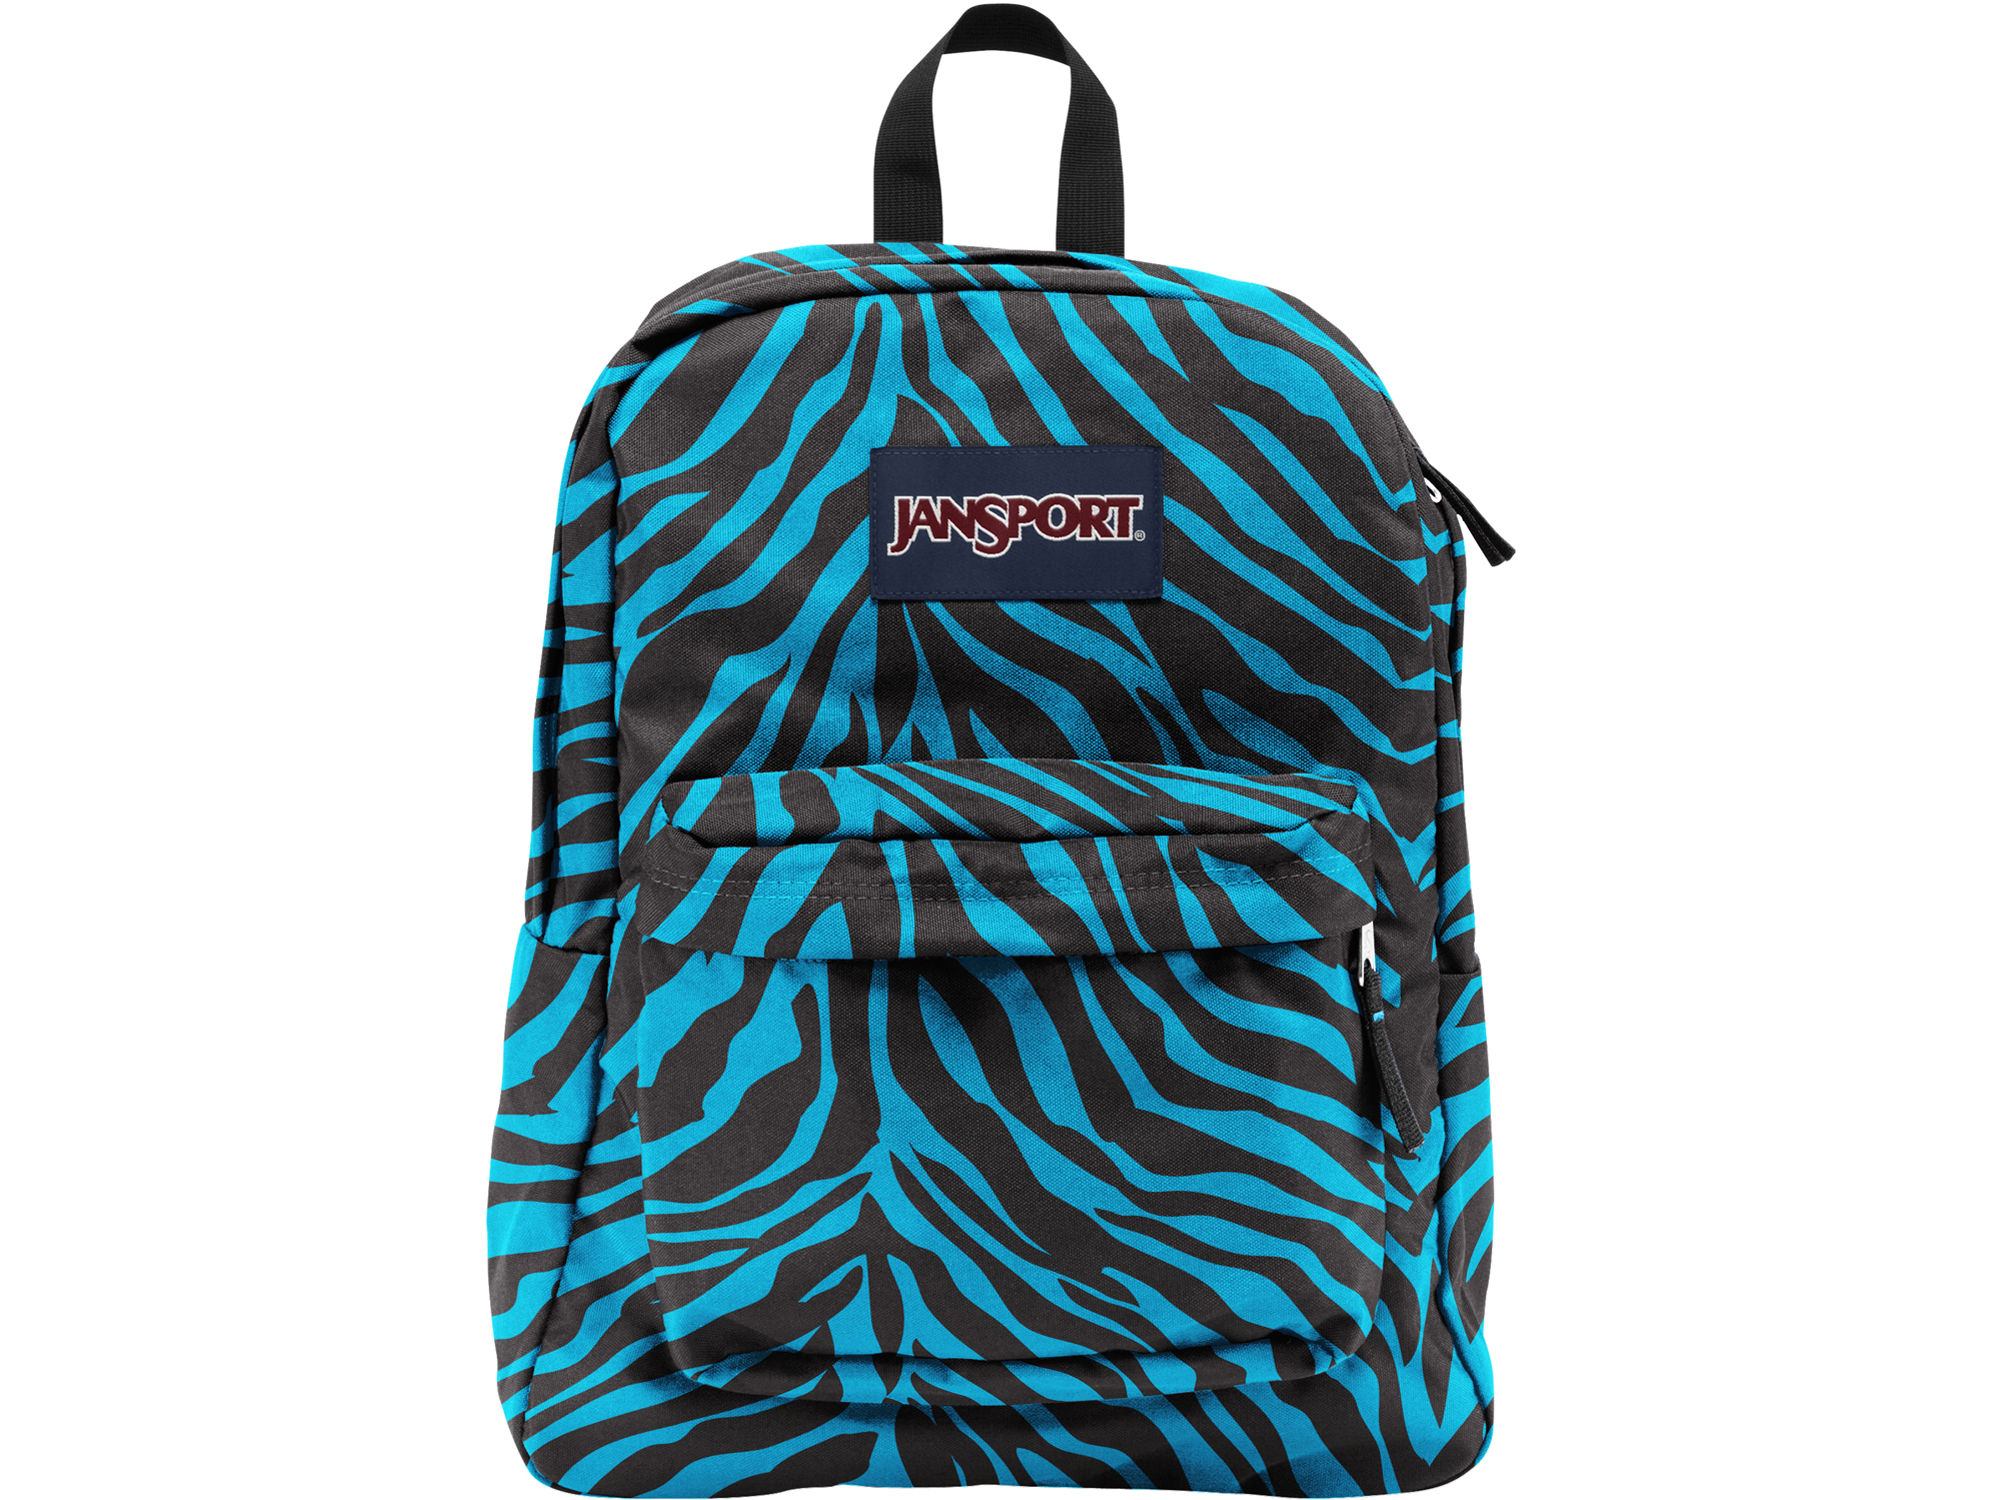 jansport blue zebra backpack Backpack Tools